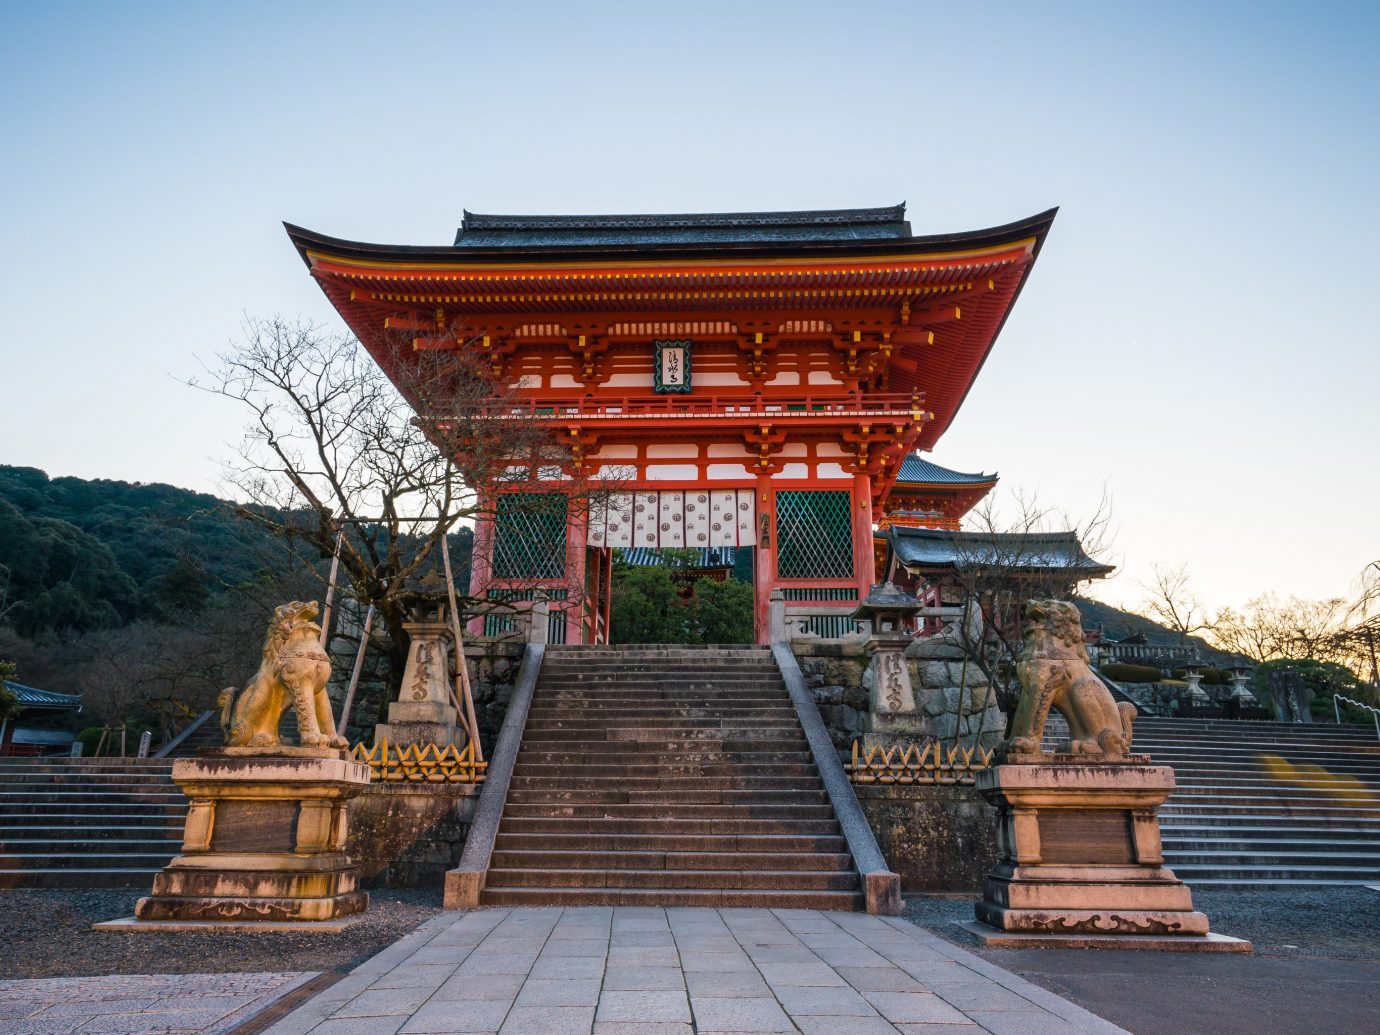 Jetsetter Guides sky outdoor ground chinese architecture historic site landmark shinto shrine building wooden Architecture pagoda shrine place of worship hindu temple torii tower palace temple